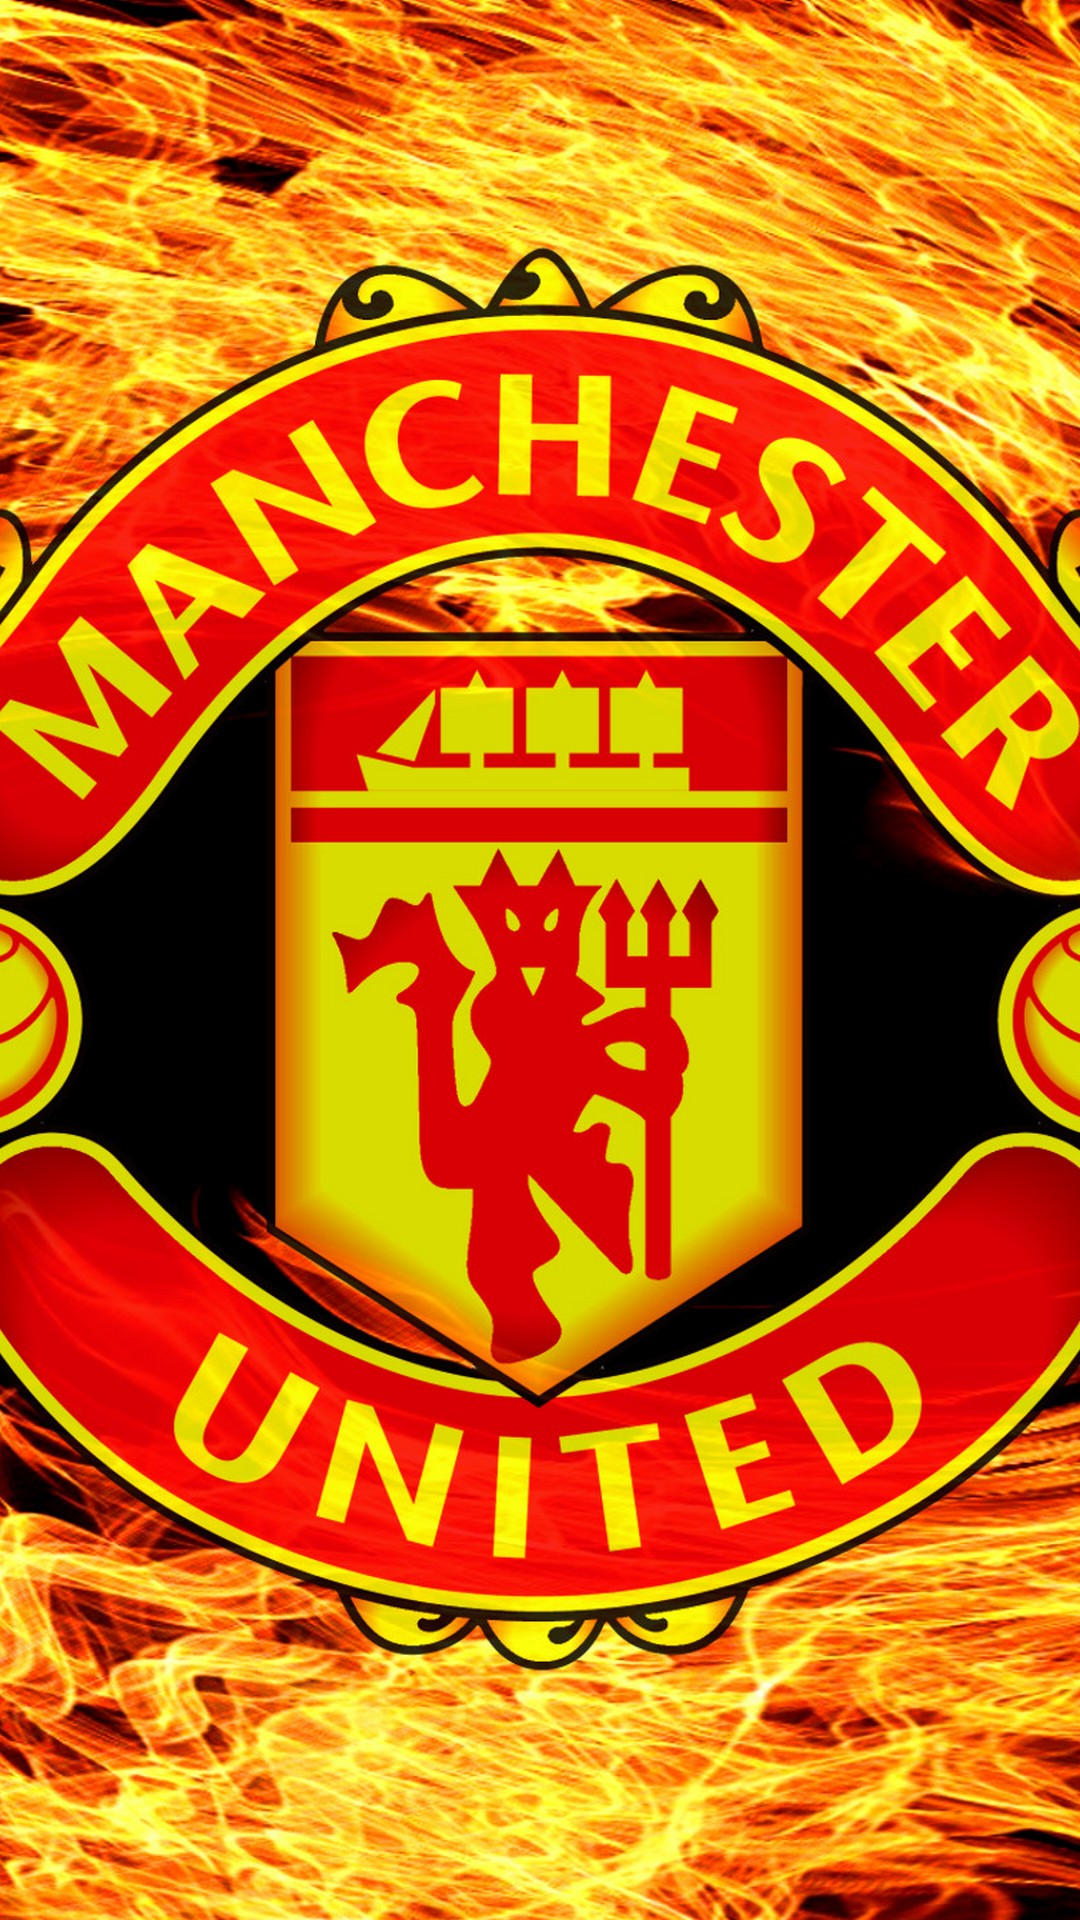 Manchester United Mobile Wallpaper Hd With High Resolution Manchester United 1080x1920 Wallpaper Teahub Io